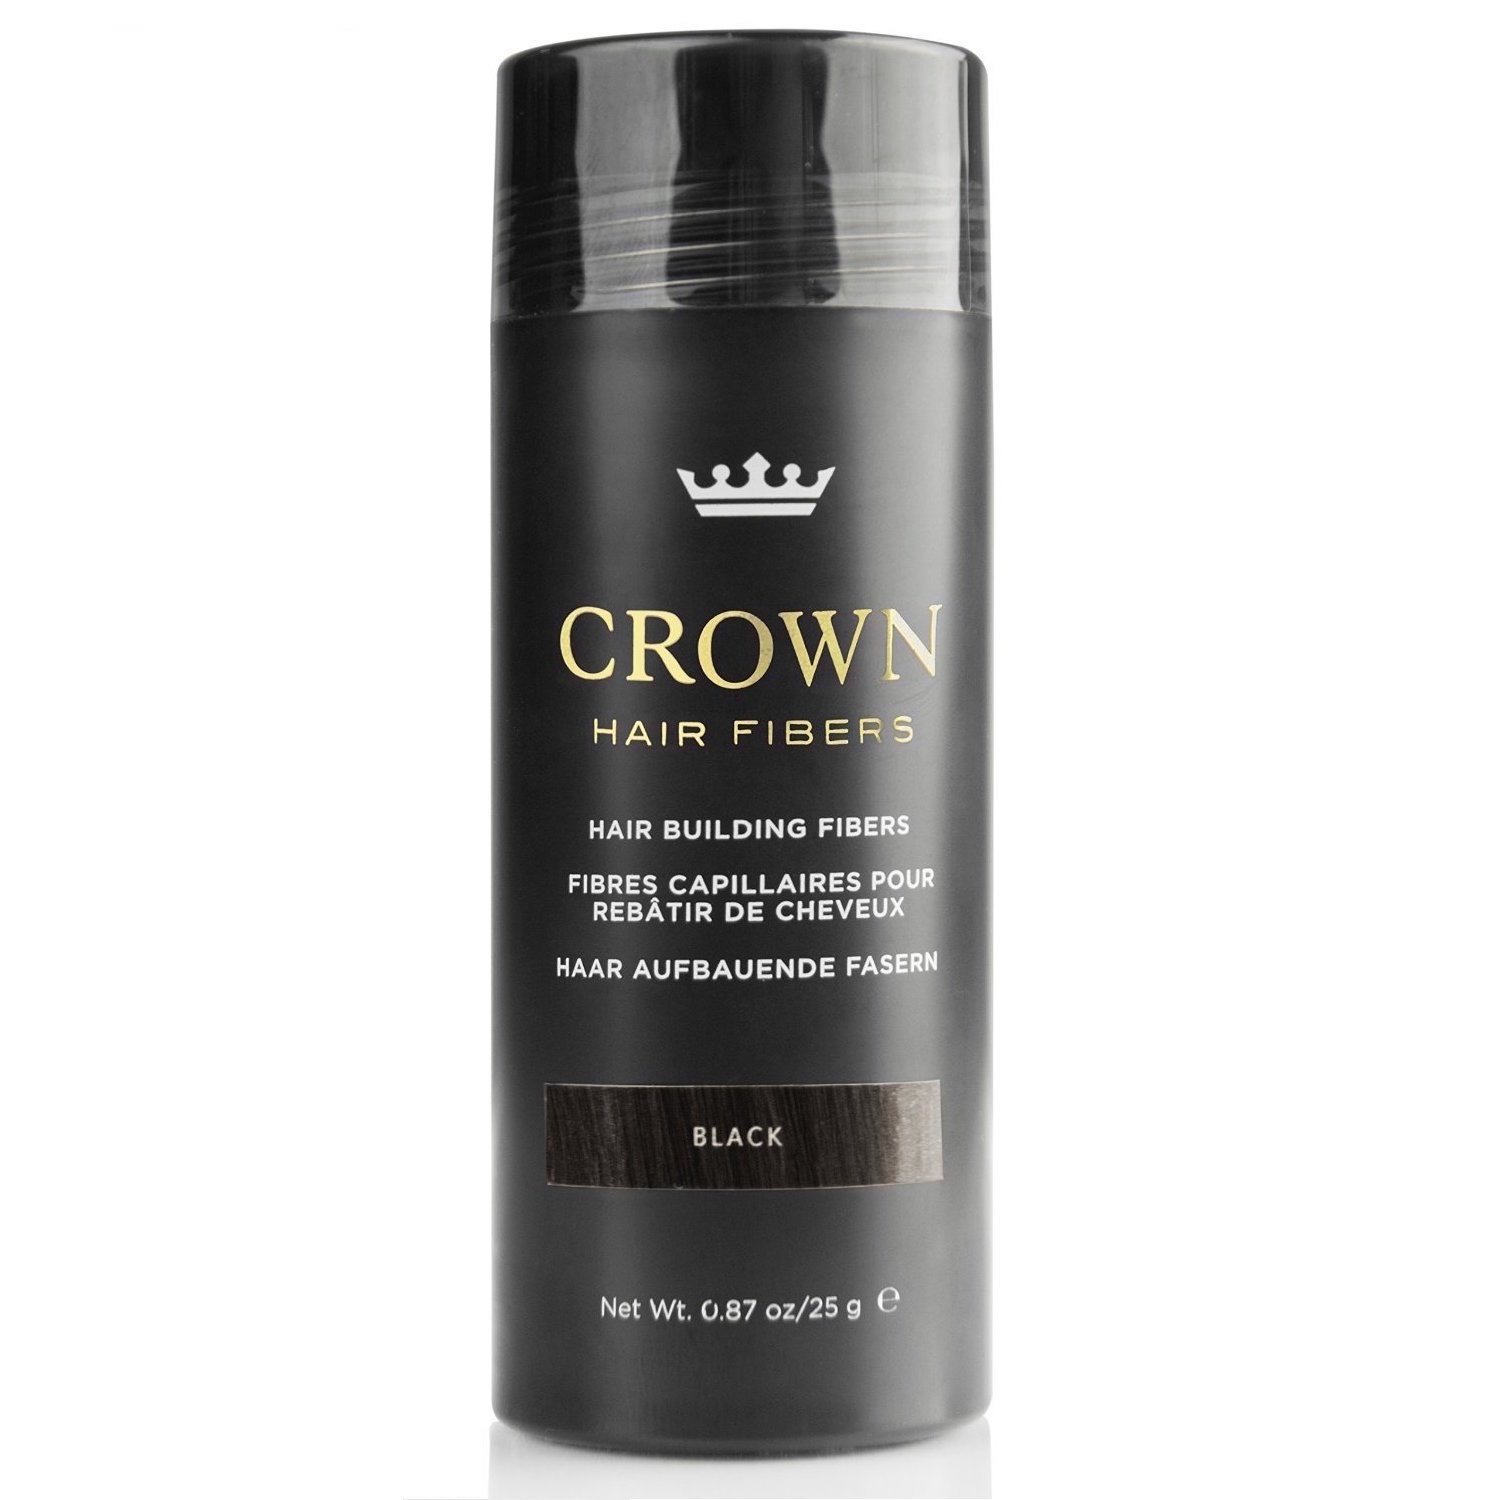 CROWN Hair Fibers - Best Keratin Hair Fibers Instantly Thickens Thinning or Balding Hair for Men and Women - Natural Hair Loss Concealer 0.87oz - Black